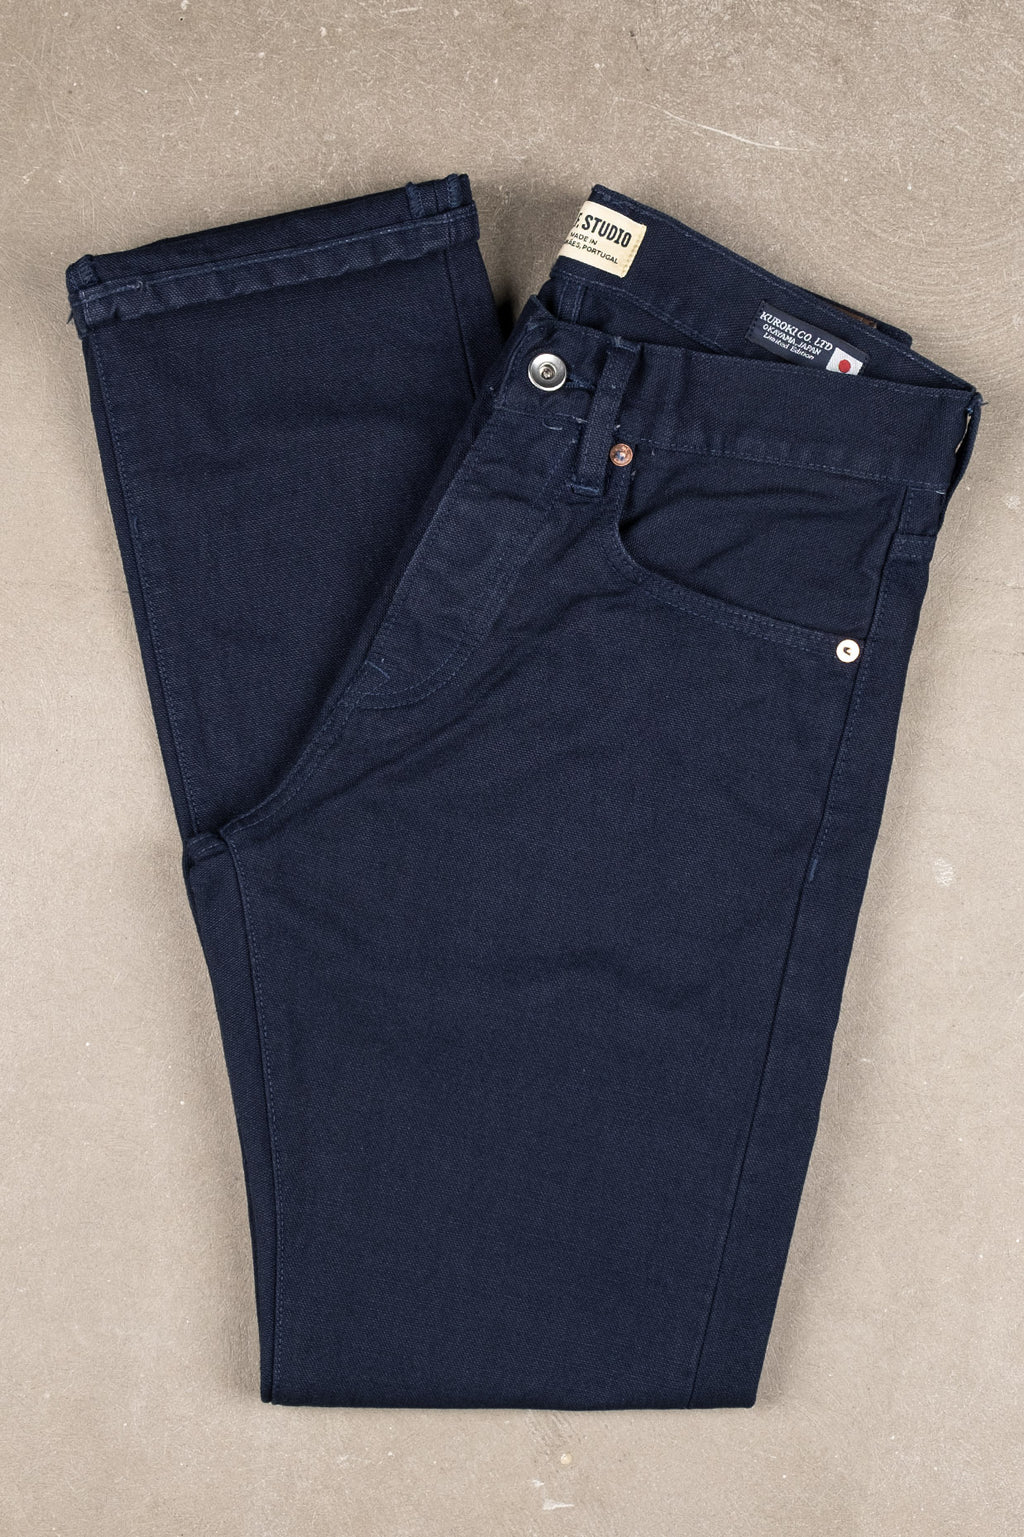 M2 16oz Kuroki Canvas - Navy